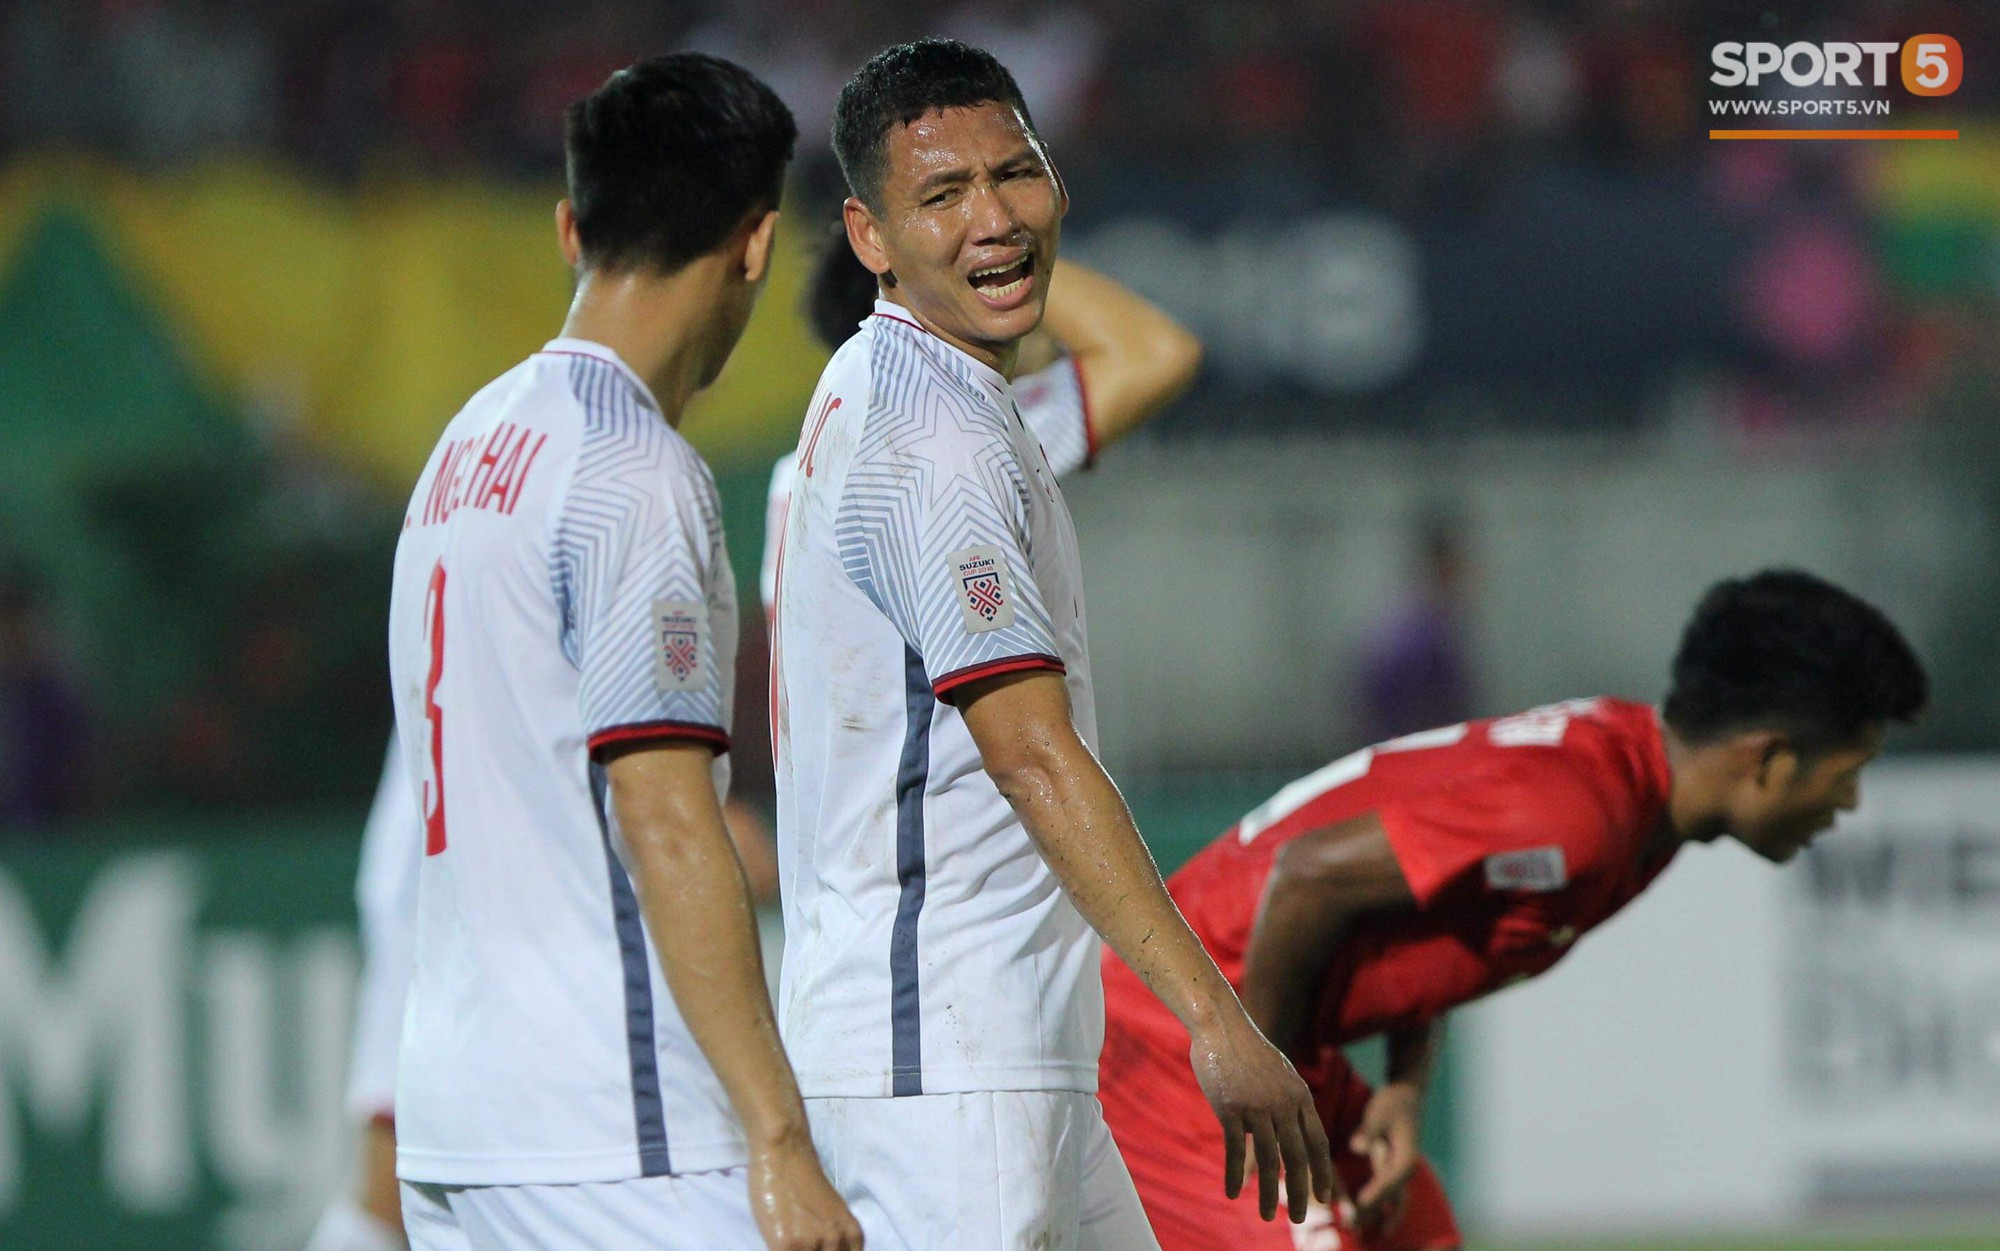 The Vietnamese number is still likely to be eliminated from AFF Cup 2018 - Photo 2.